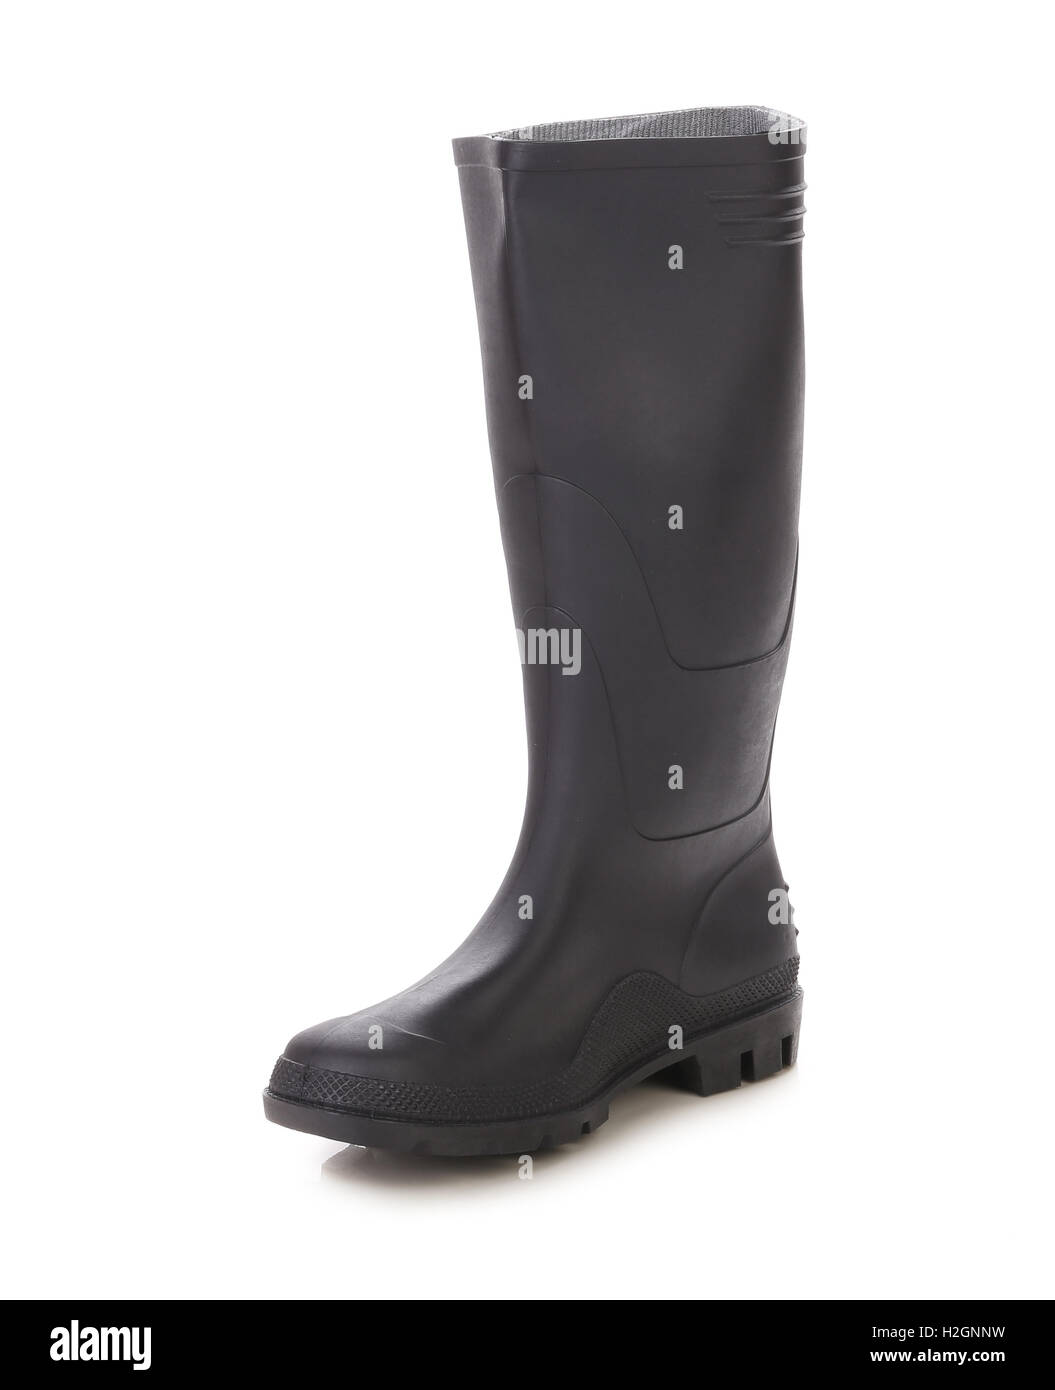 High rubber boot. Stock Photo